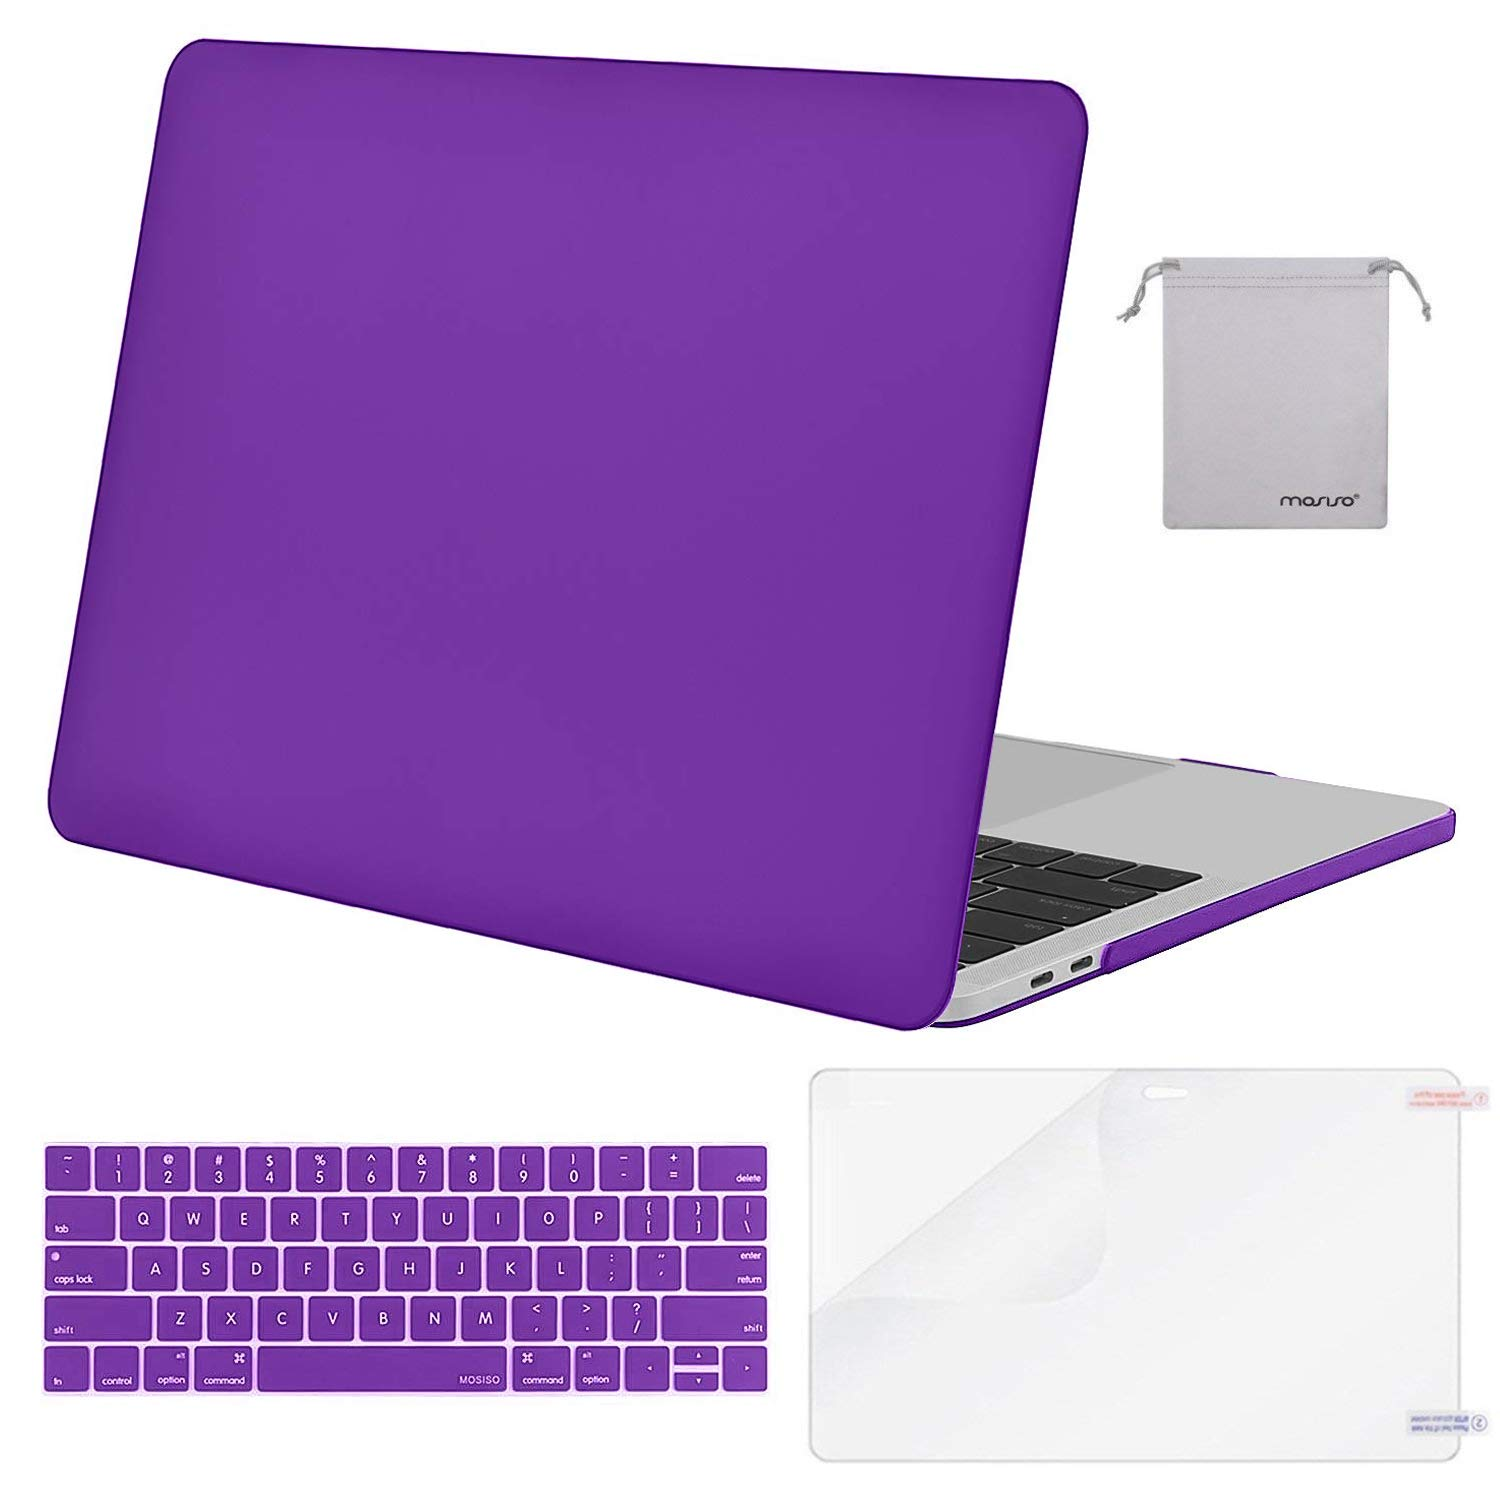 MOSISO MacBook Pro 13 inch Case 2019 2018 2017 2016 Release A2159 A1989 A1706 A1708 Plastic Hard Shell /&Keyboard Cover /&Screen Protector /&Storage Bag Compatible with MacBook Pro 13 Airy Blue